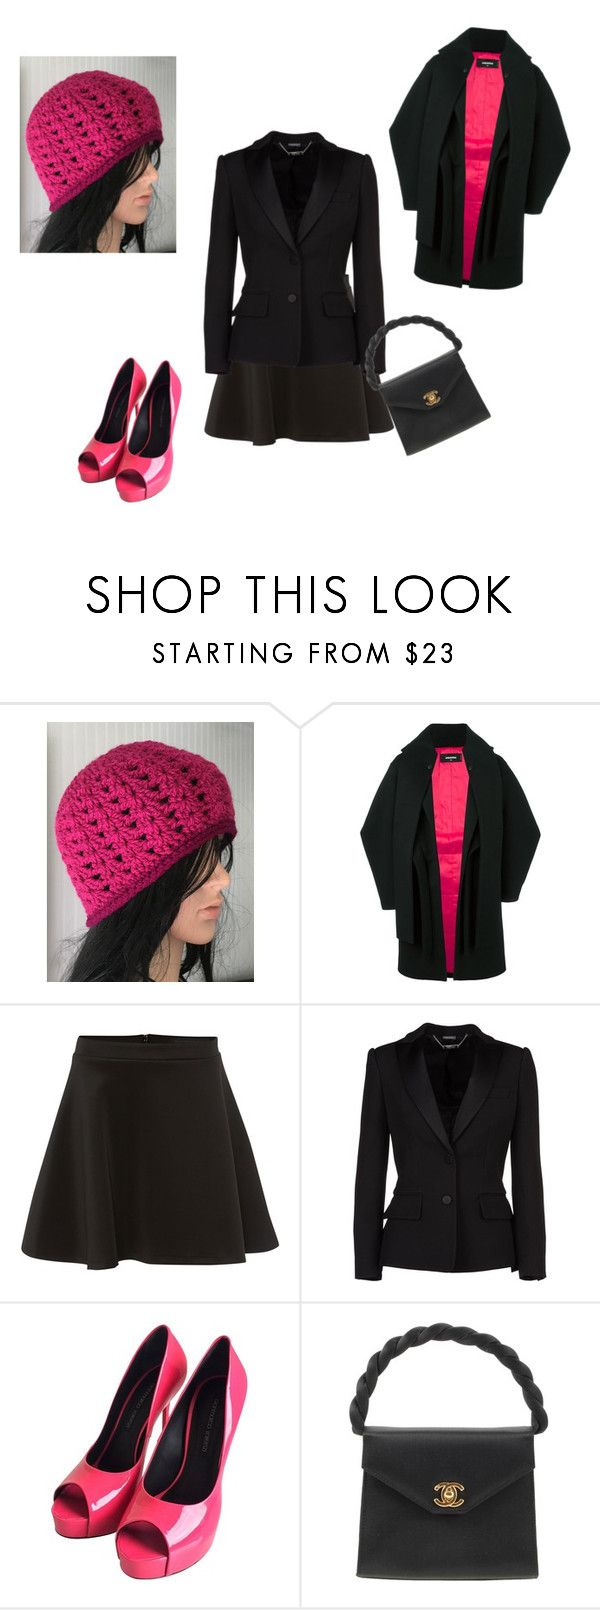 """""""Off to work..."""" by katieness ❤ liked on Polyvore featuring Dsquared2, Silvian Heach, Alexander McQueen, Gianmarco Lorenzi and Chanel"""